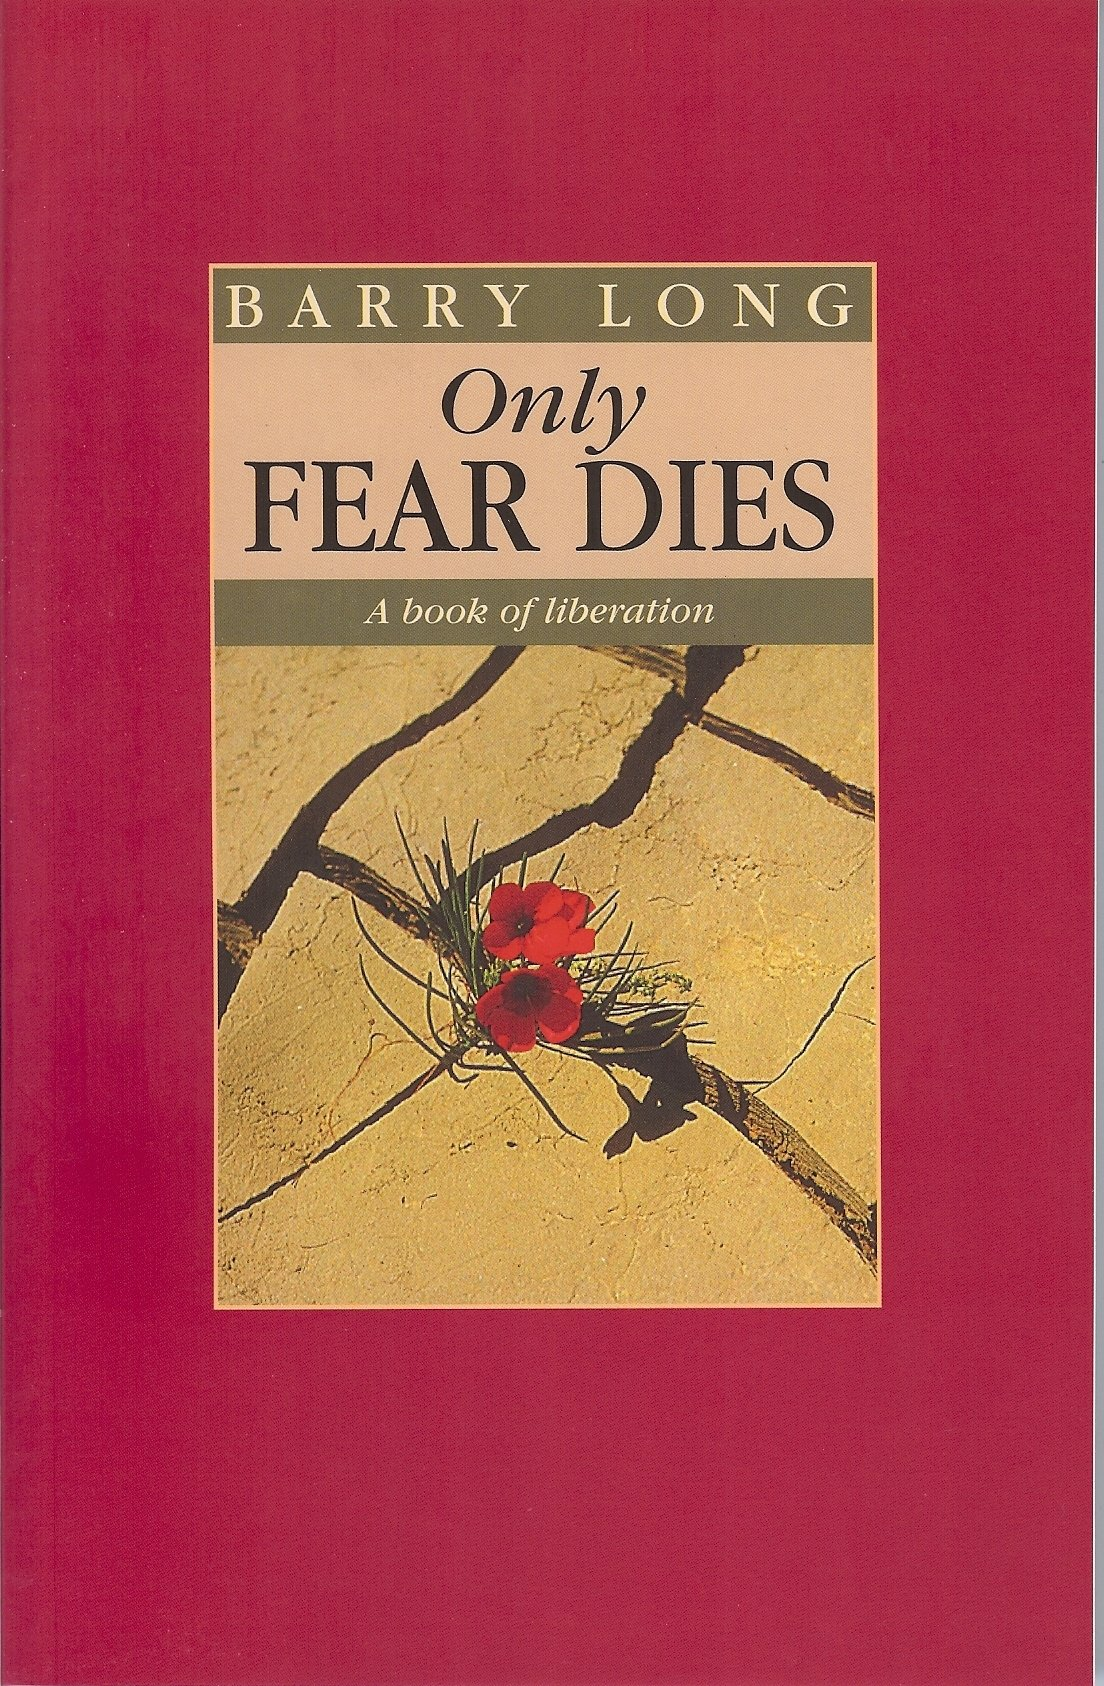 Only fear dies a book of liberation barry long 9780950805078 only fear dies a book of liberation barry long 9780950805078 amazon books stopboris Choice Image